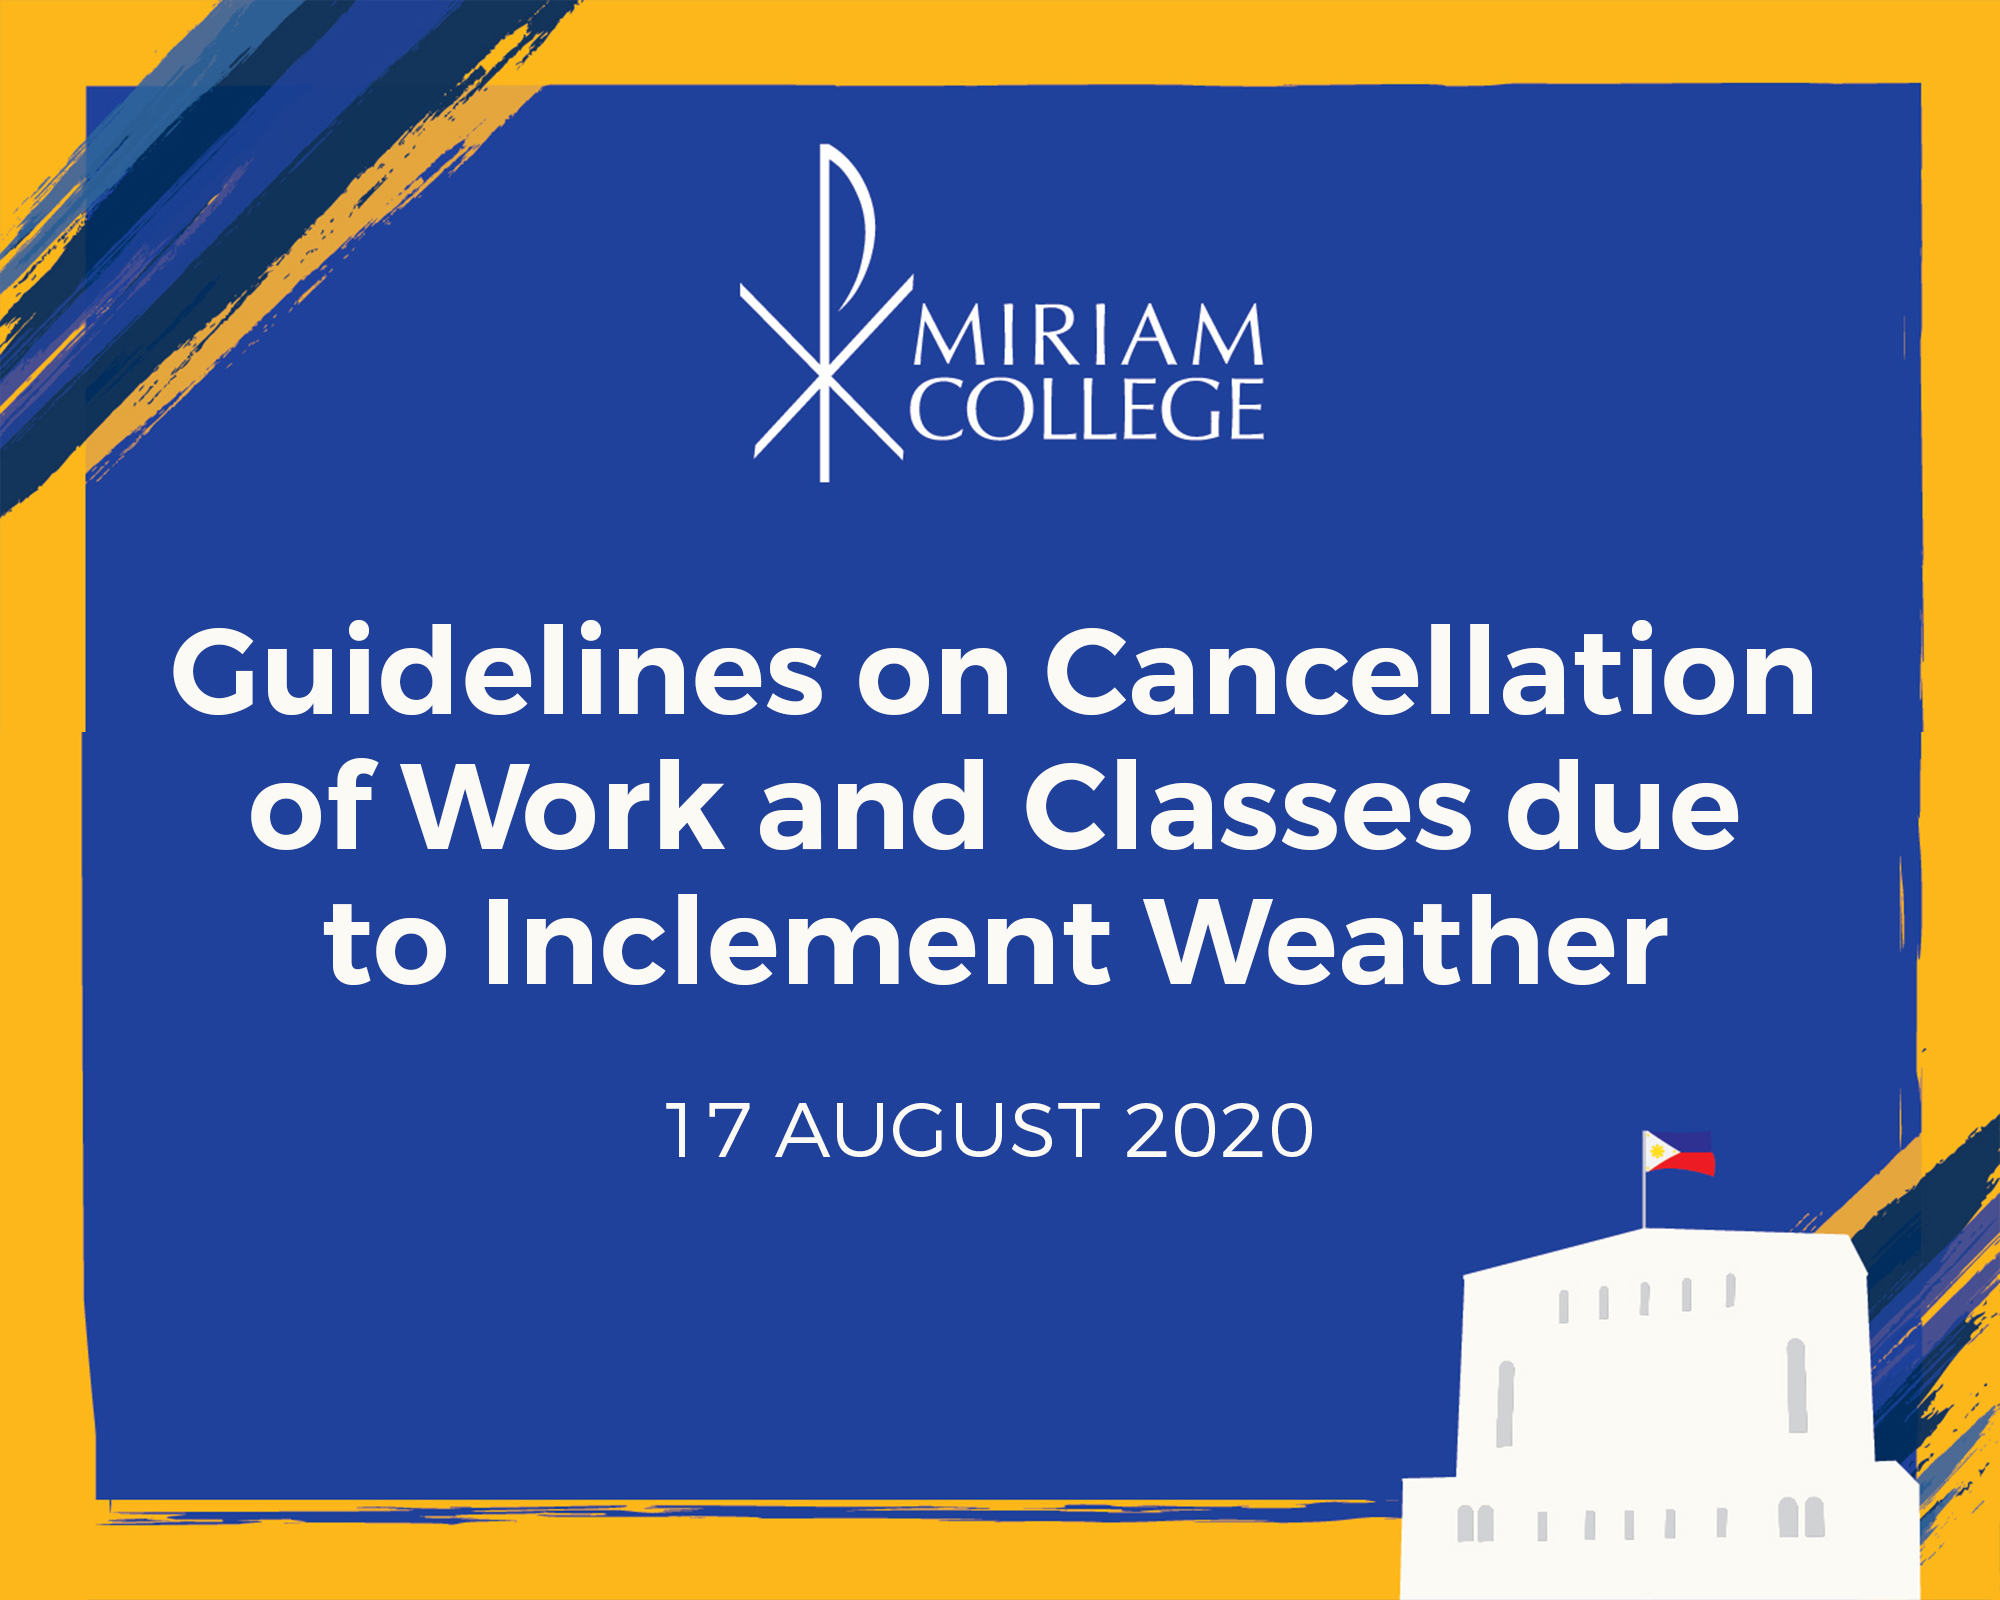 Updated Guidelines on Cancellation of Work and Classes Due to Inclement Weather